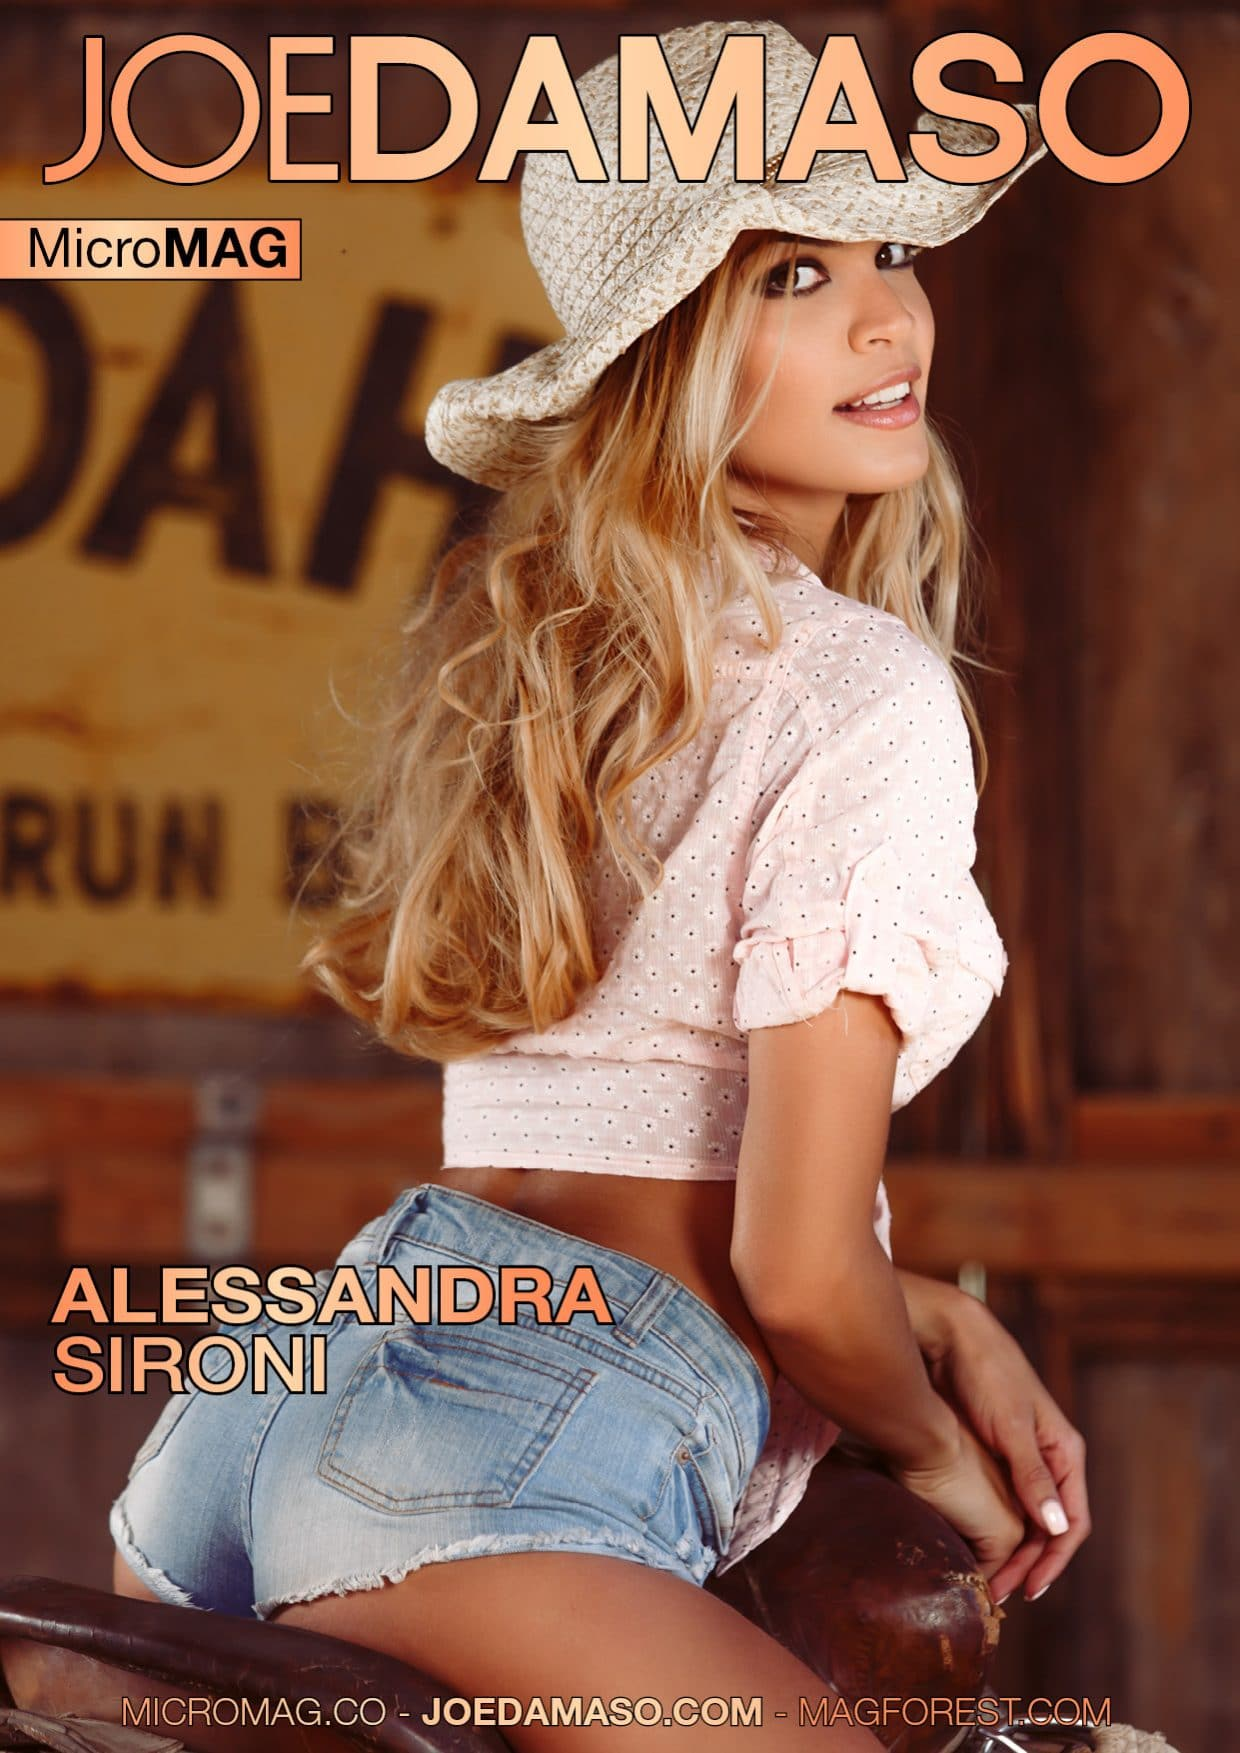 Joe Damaso Micromag – Alessandra Sironi